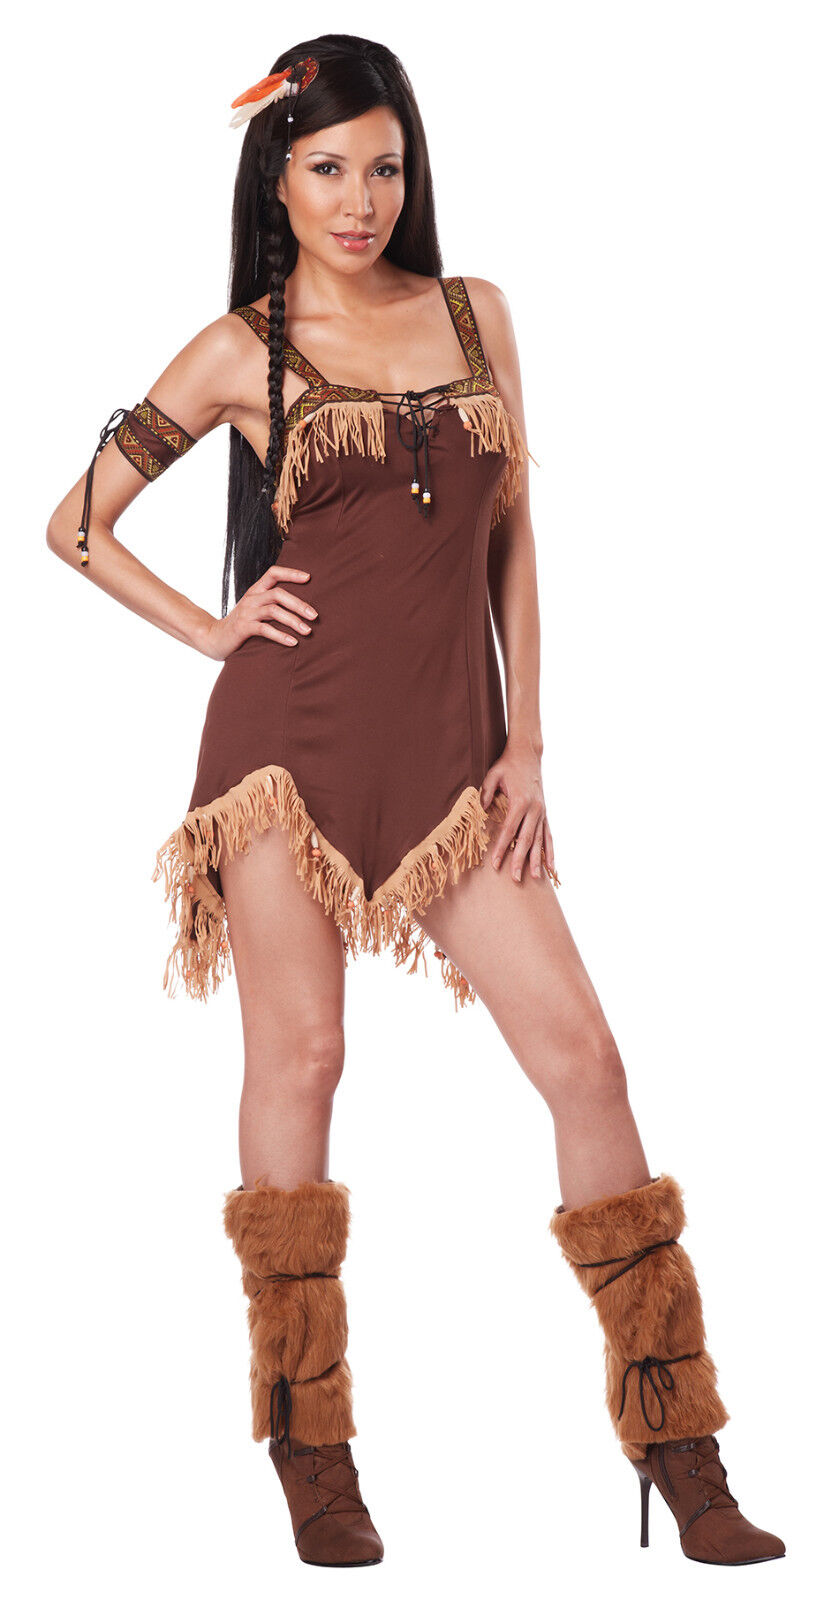 f0c35a21c Details about Sexy Indian Princess Pocahontas Halloween Adult Costume